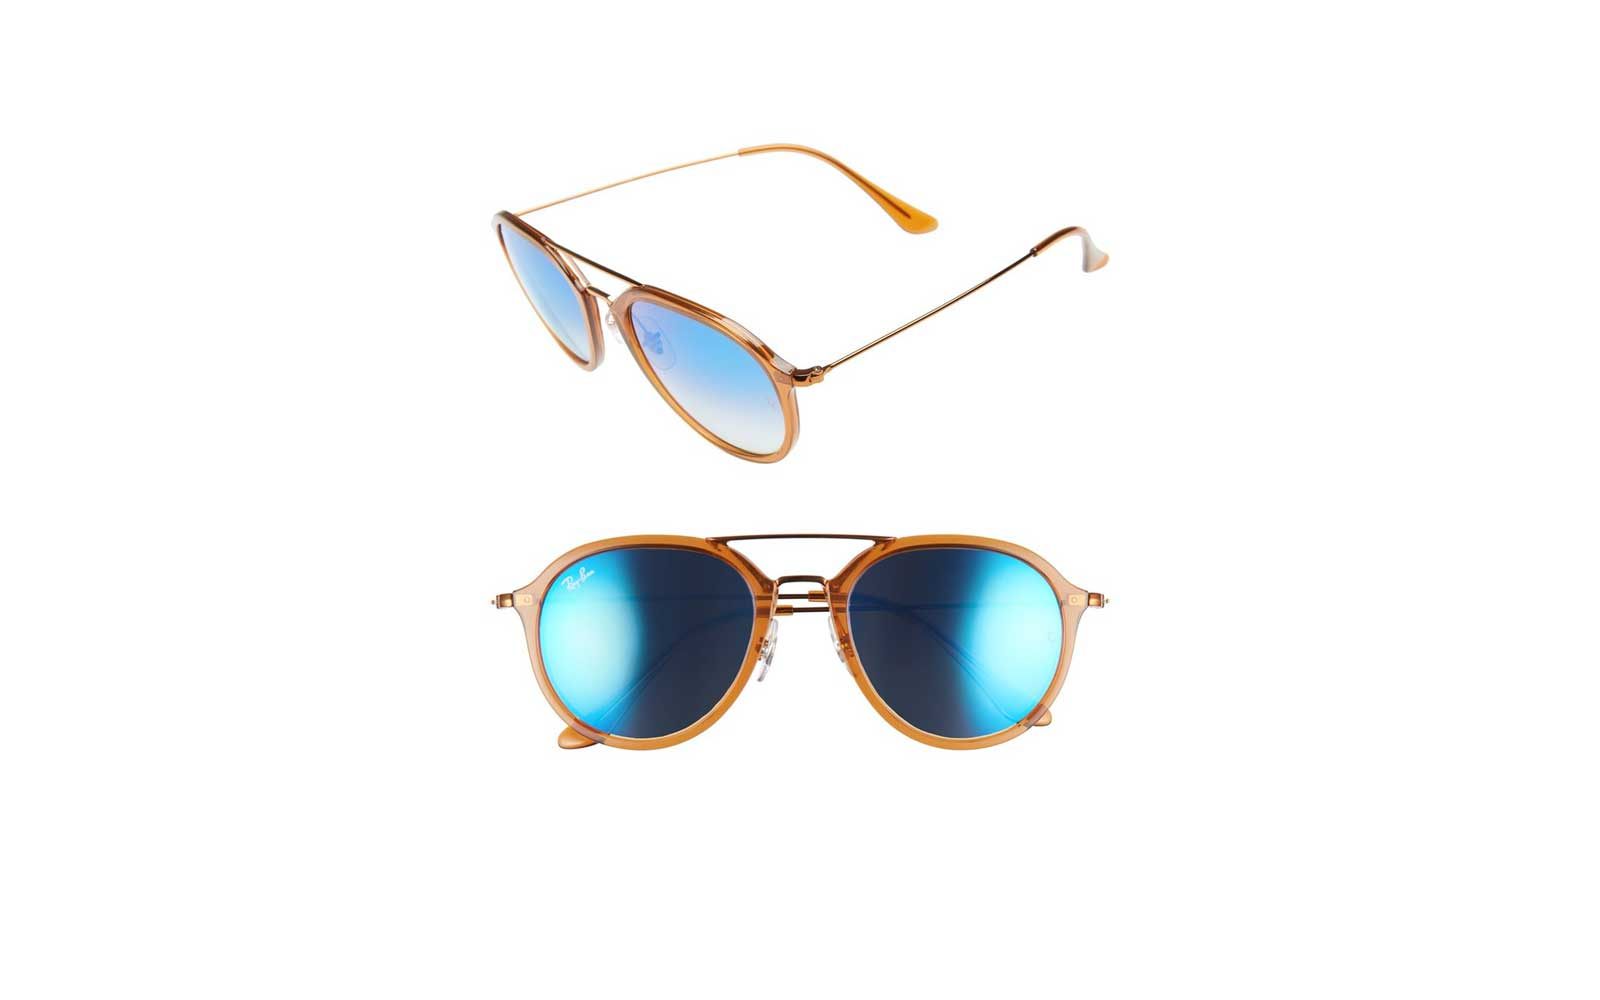 Ray Ban Aviator Sunglasses in Brown